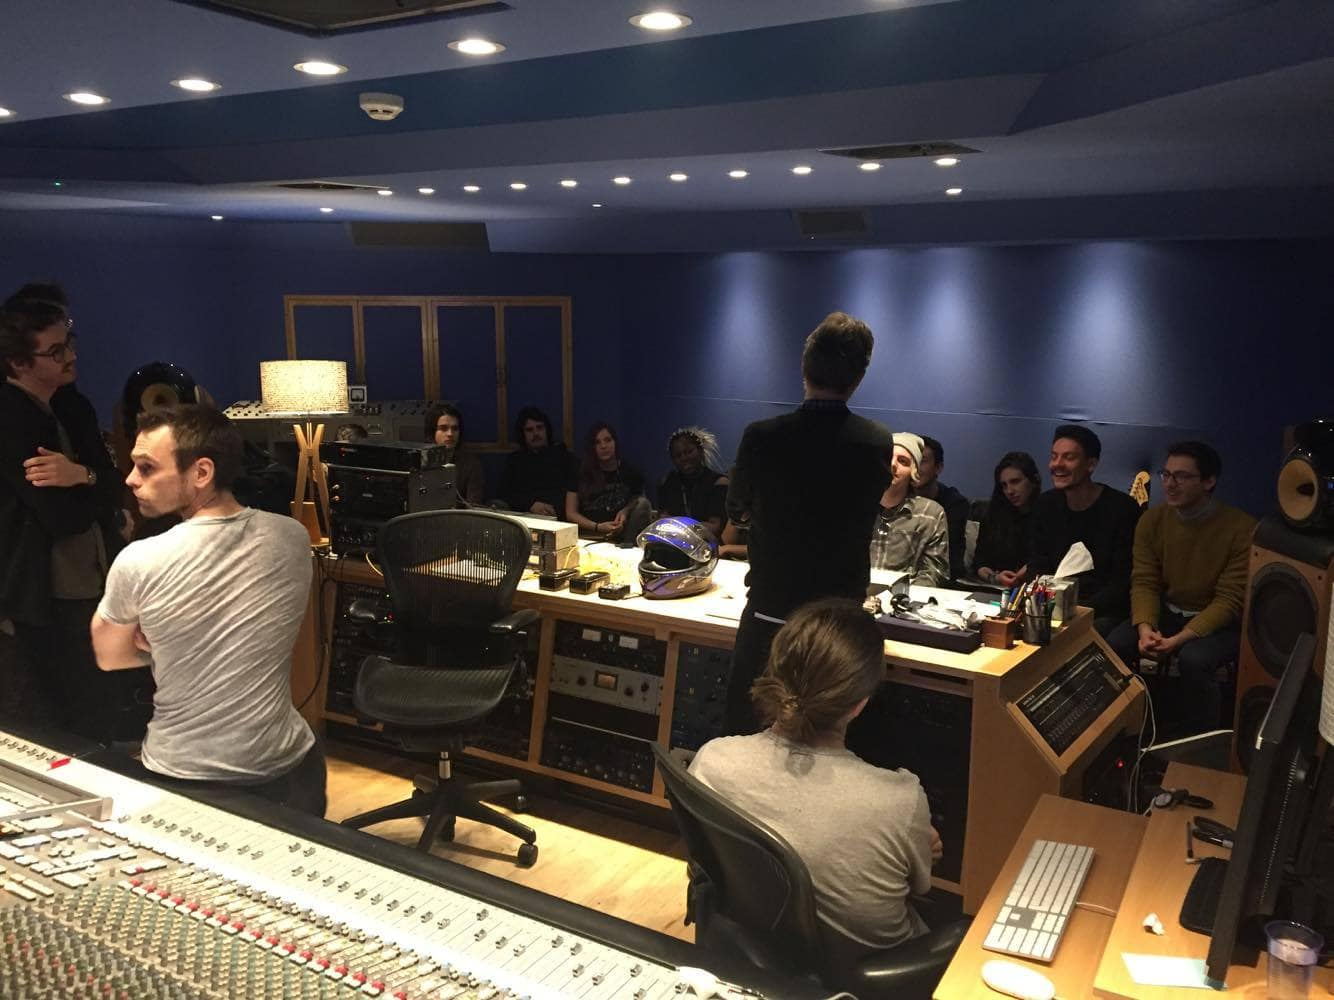 Our students in the control room with Carlos Lellis and Abbey Road Studio Engineer Stefano Civetta